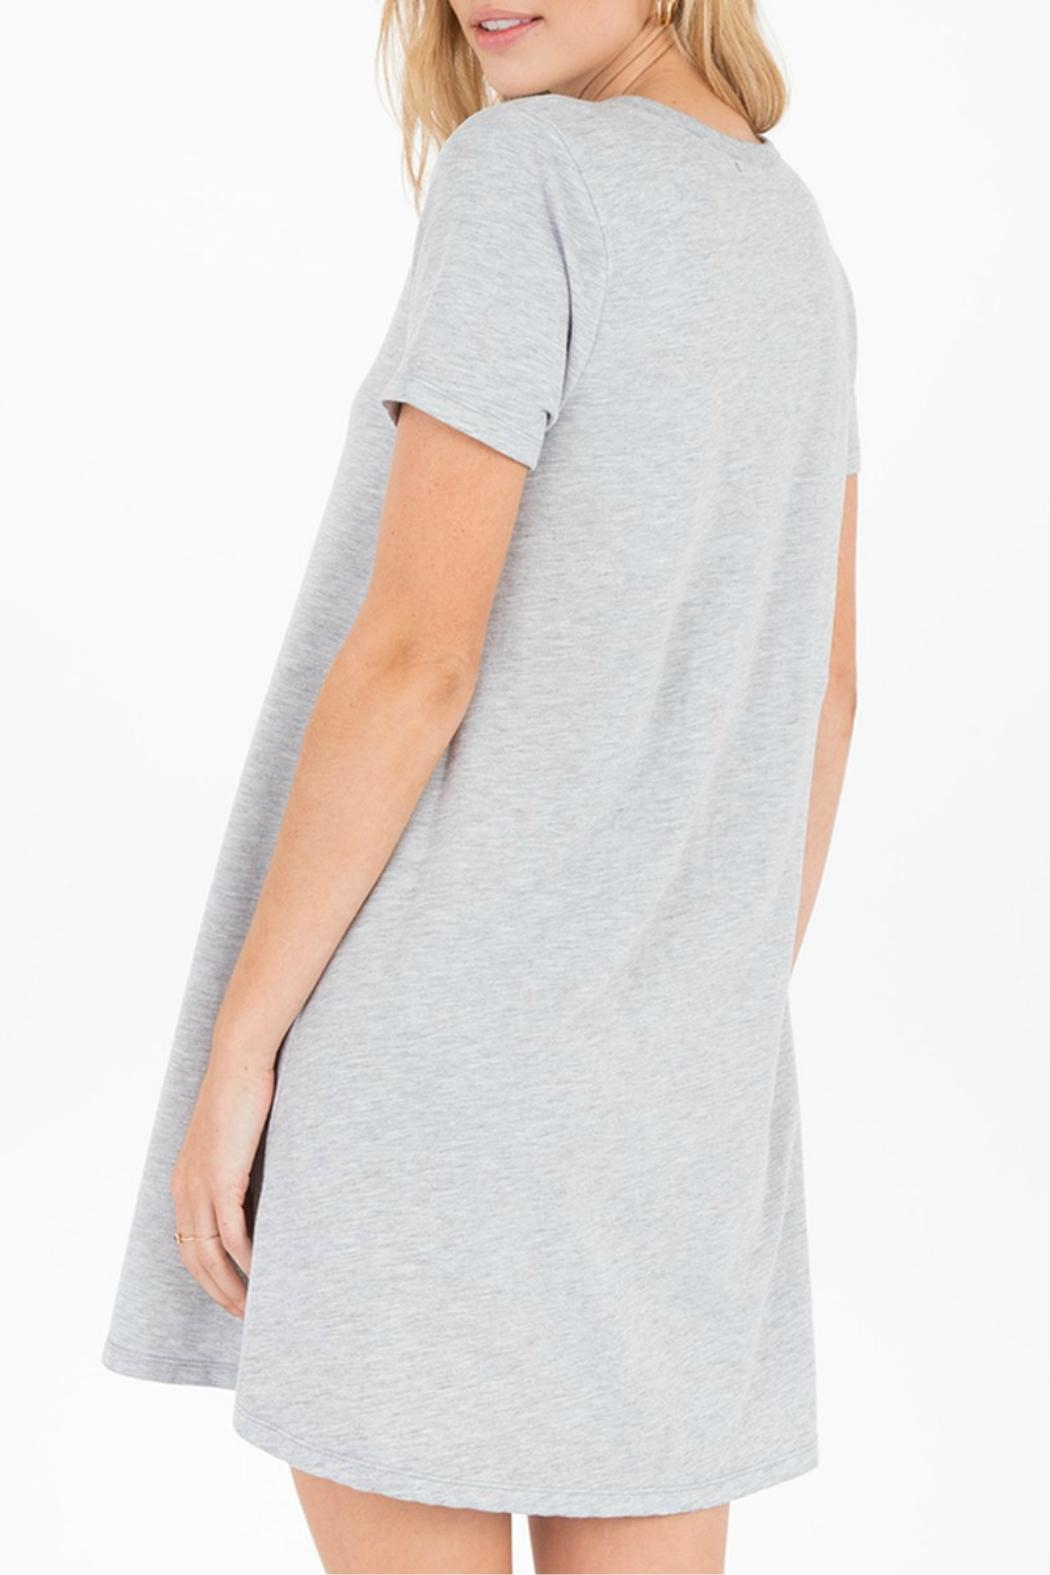 z supply Cutout Front Dress - Side Cropped Image